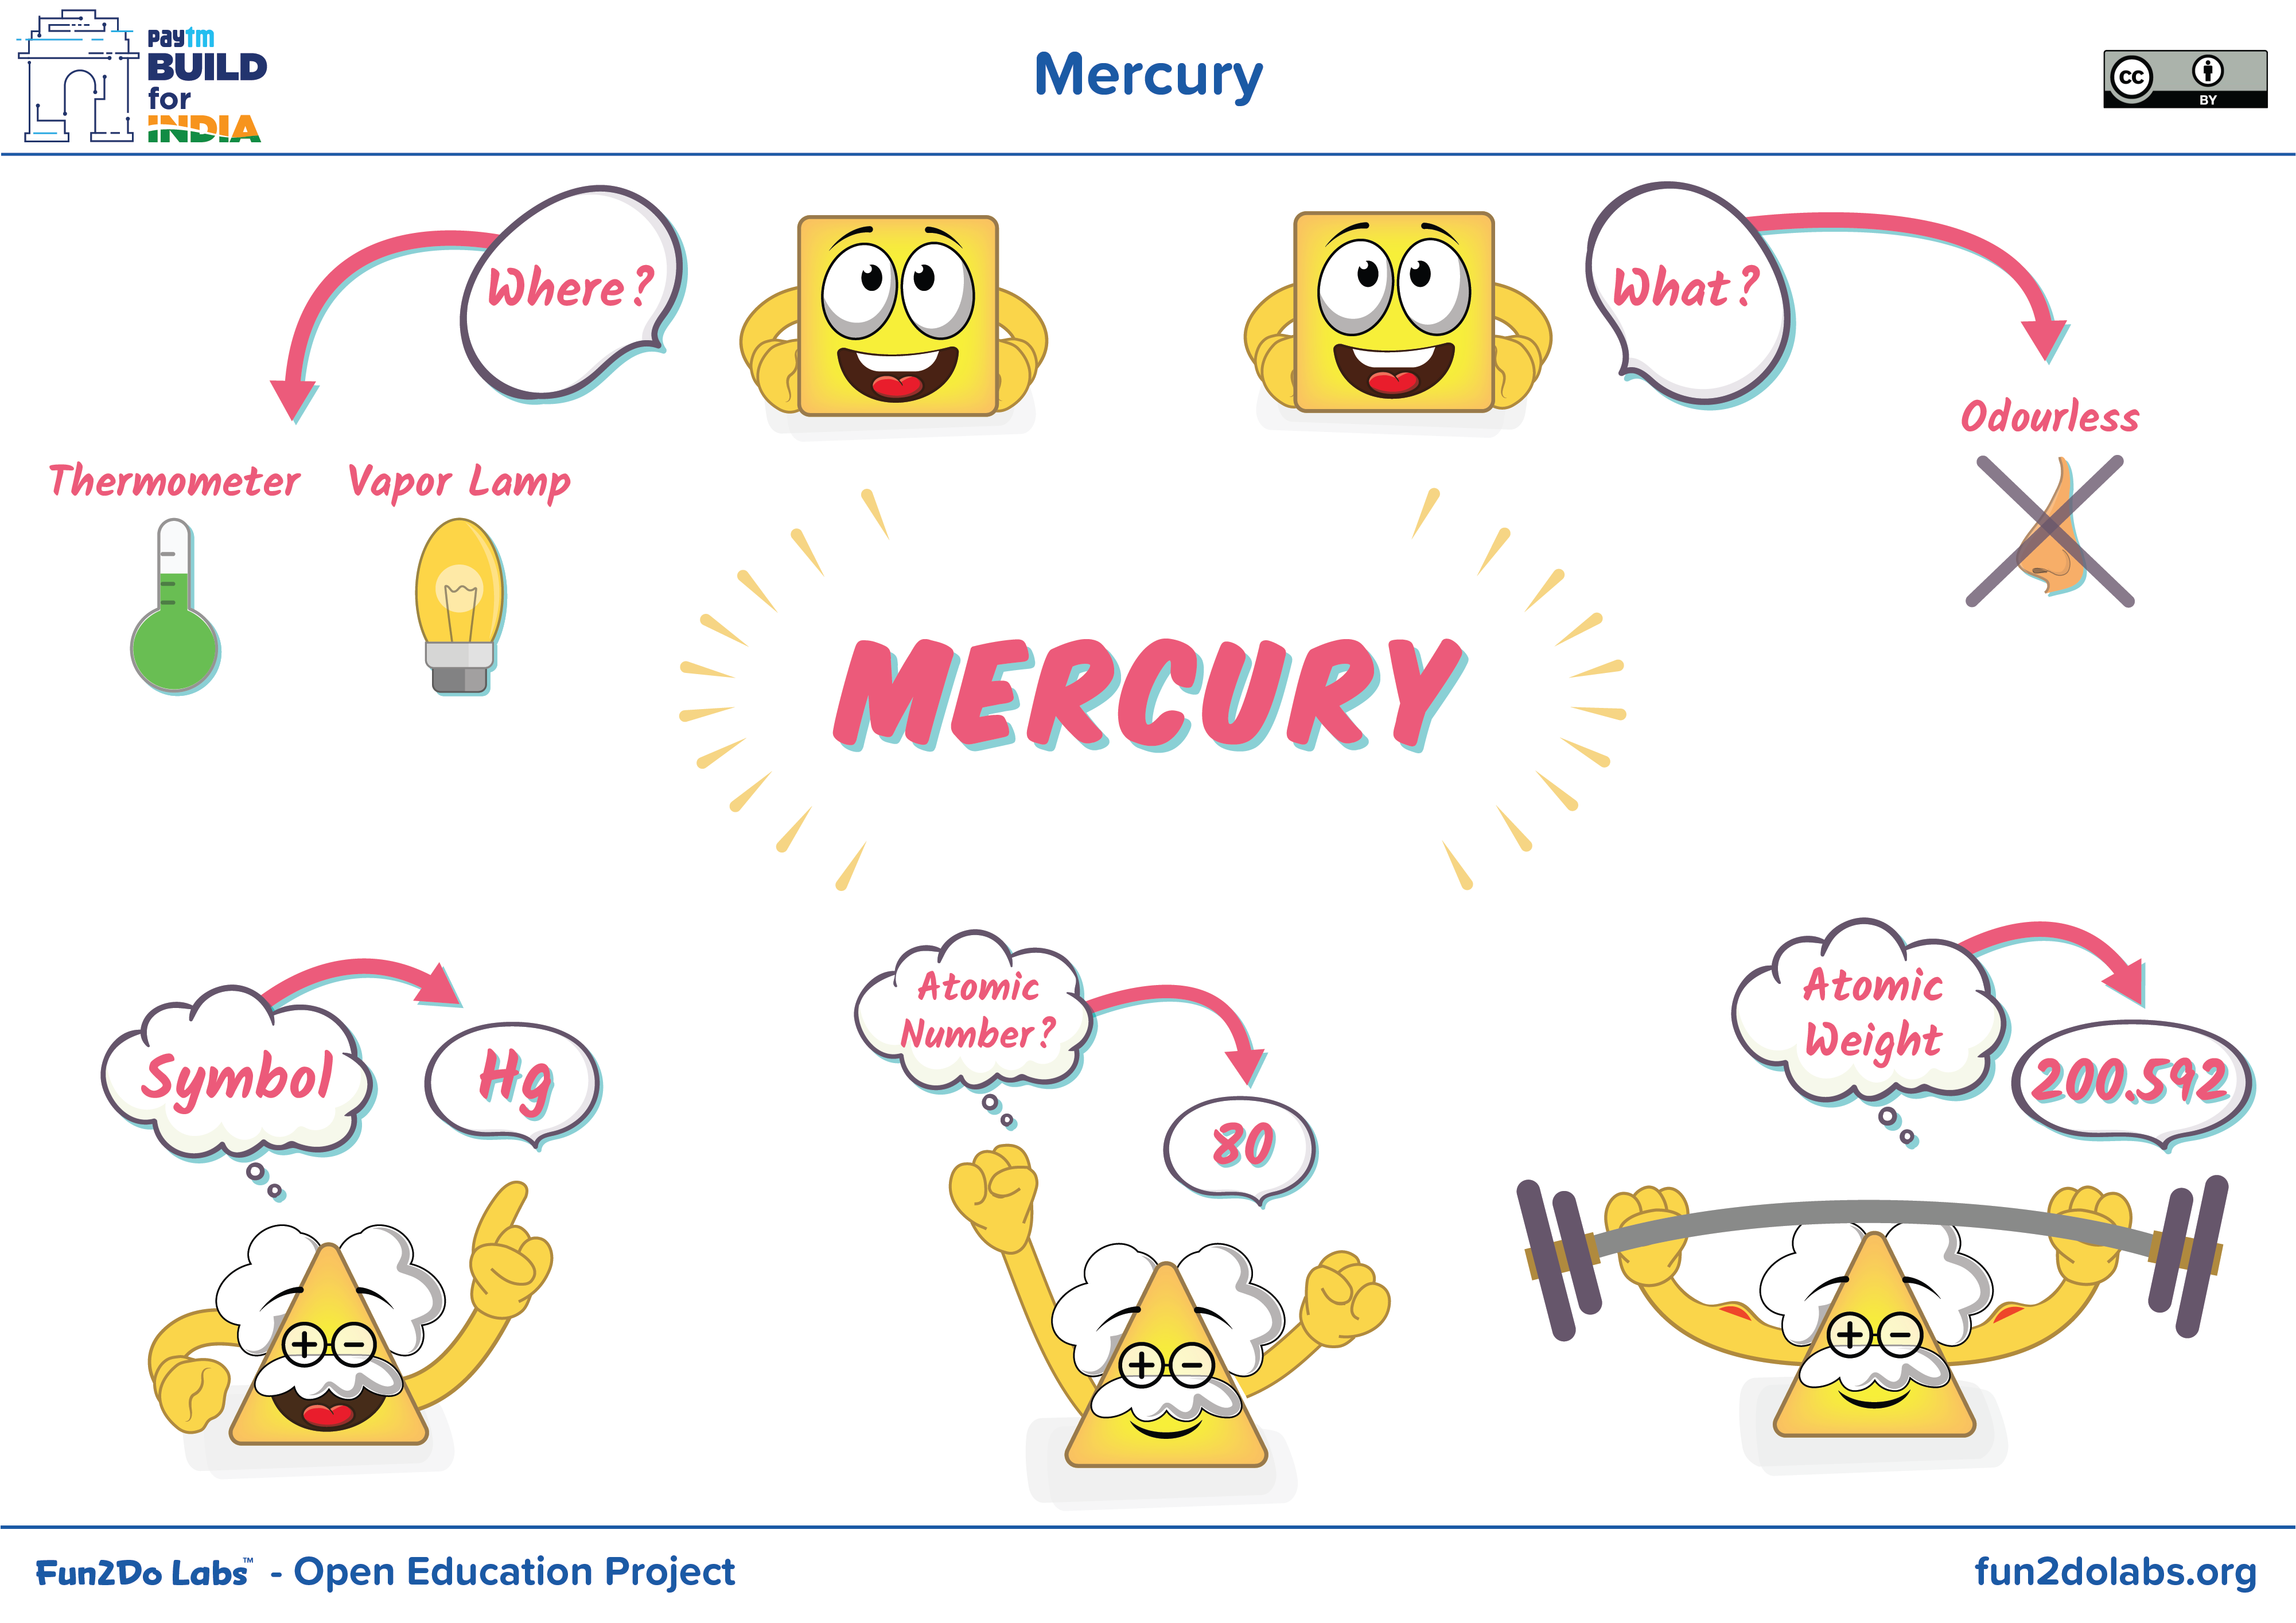 You Can Use This Image For Introducing Mercury To Kids